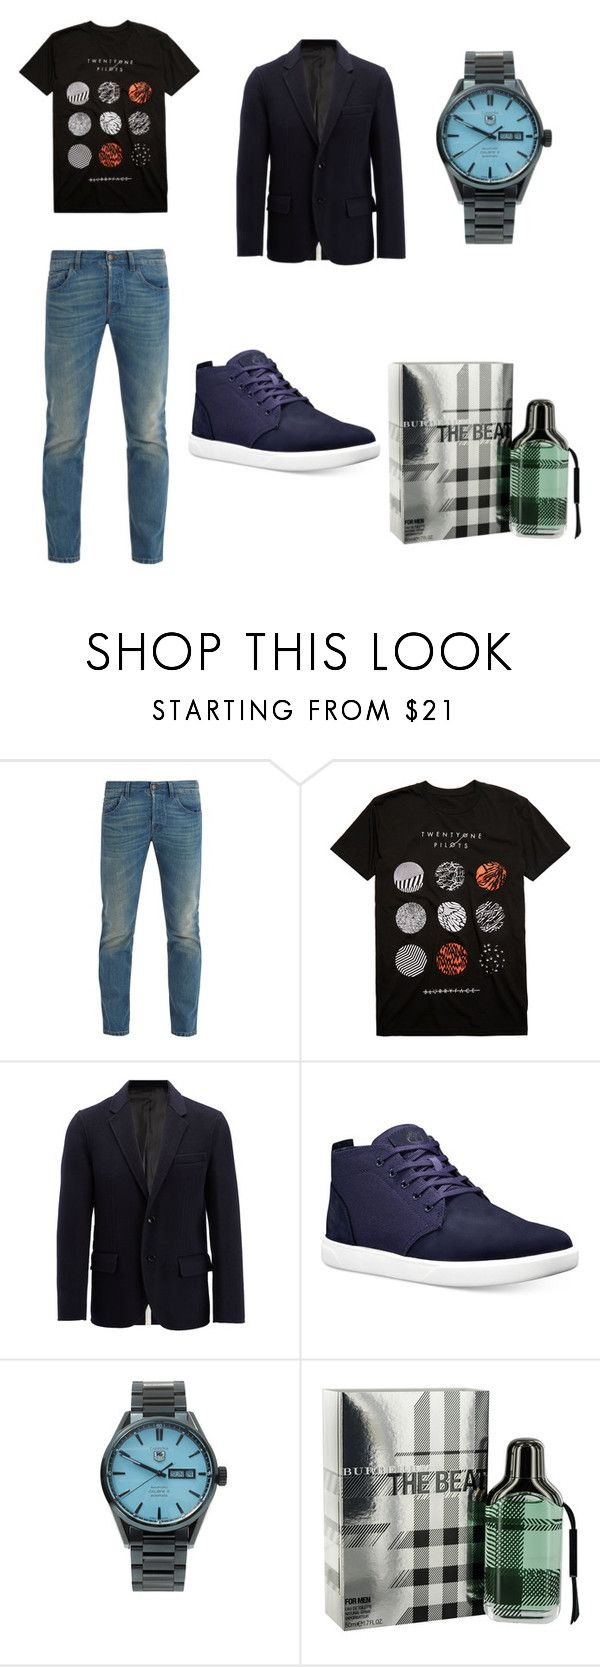 """Sem título #524"" by karen-moraes-baroni on Polyvore featuring Gucci, Hot Topic, Joseph, Timberland, Bamford Watch Department, Burberry, men's fashion e menswear"